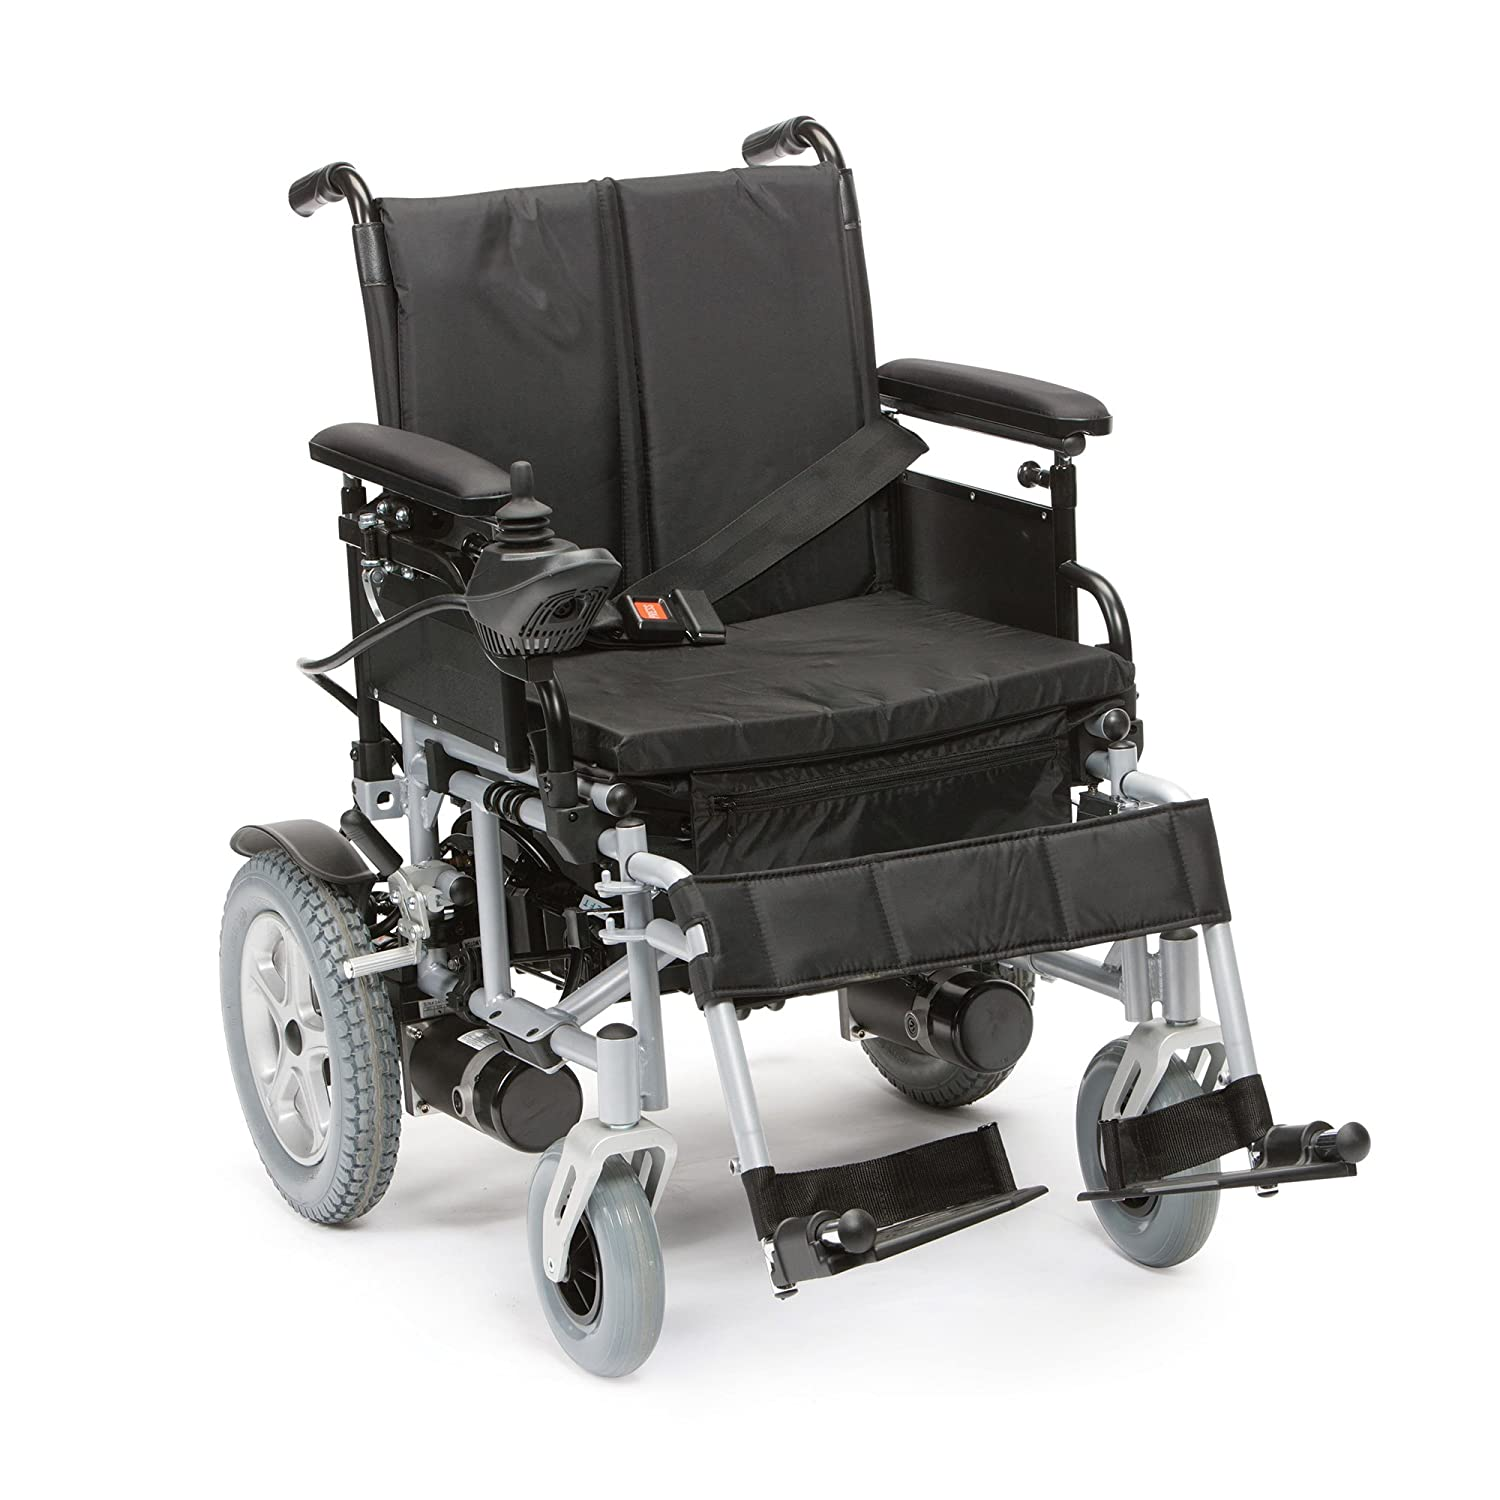 Cirrus folding powerchair electric wheelchair 4mph and 15 miles